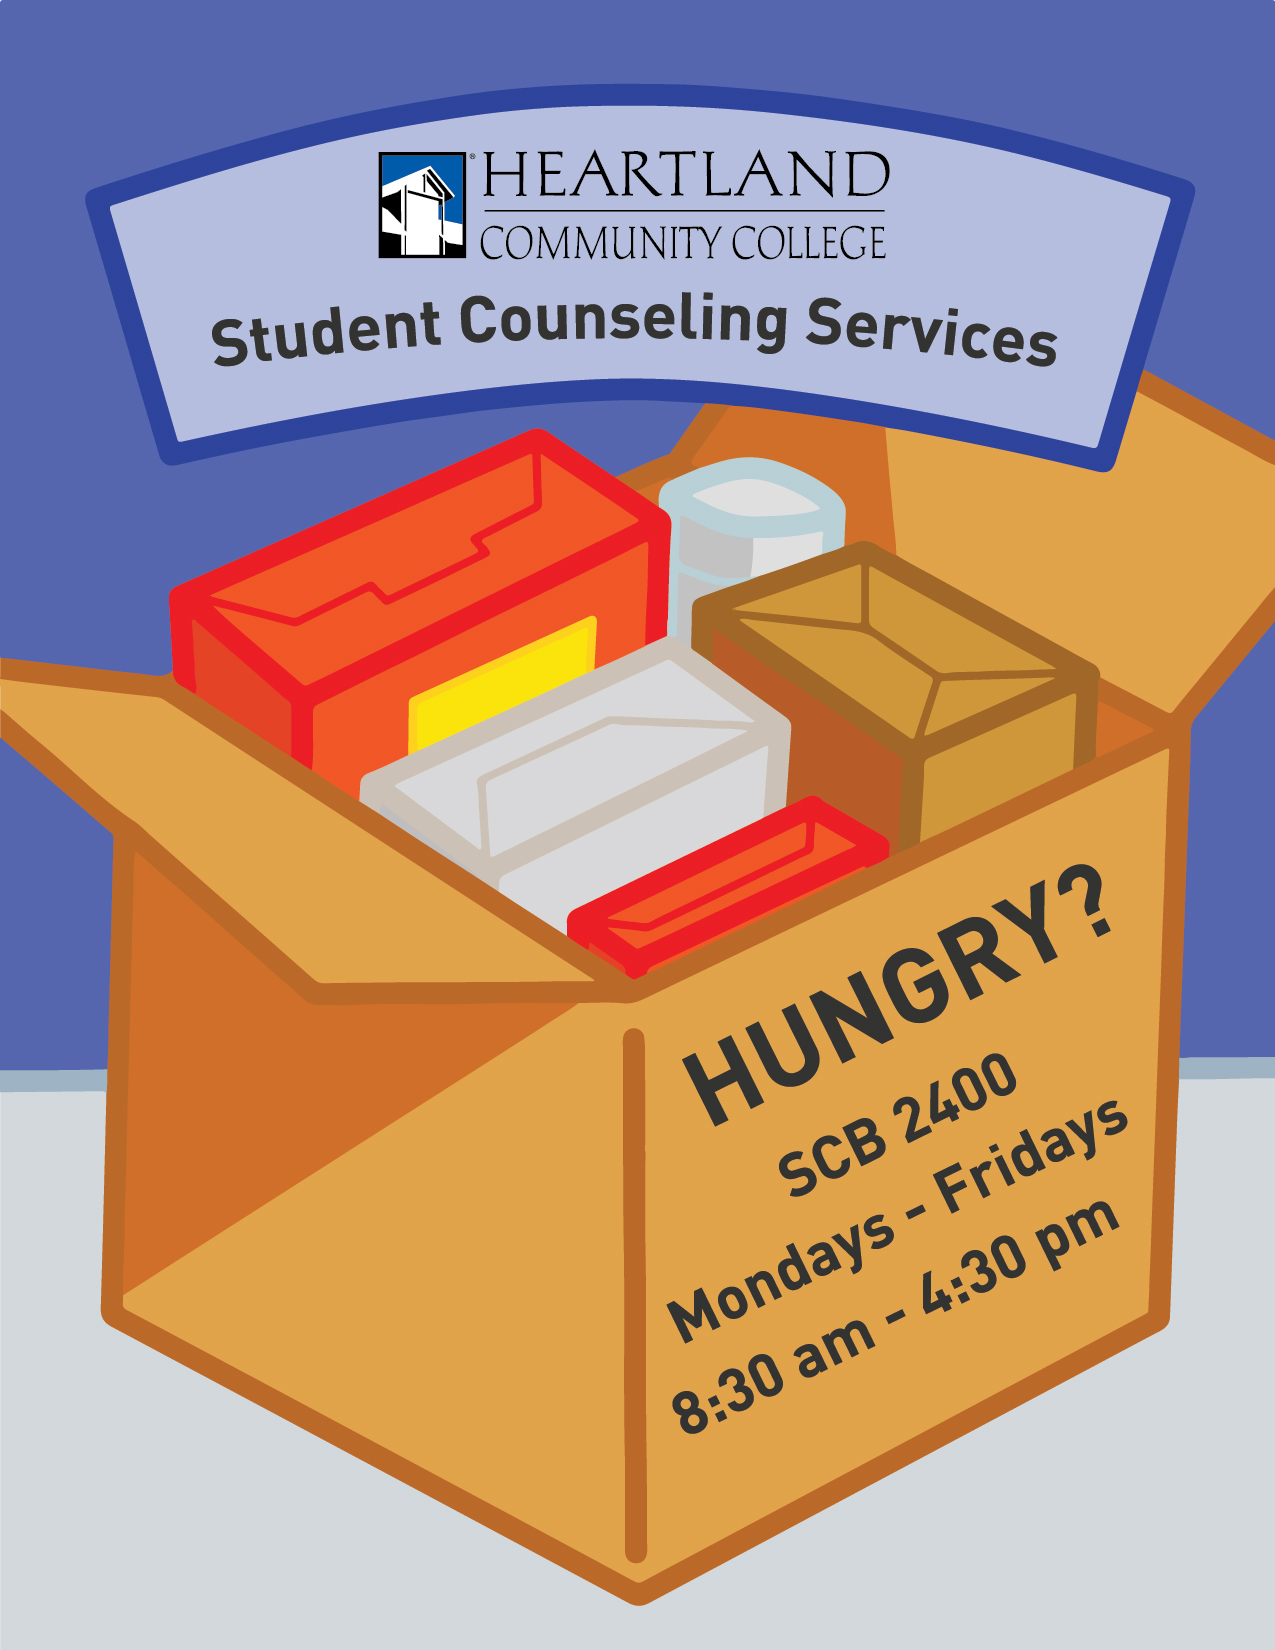 Request a food box from Student Counseling Services in SCB 2400. Monday through Friday 8:30 AM - 4:30 PM